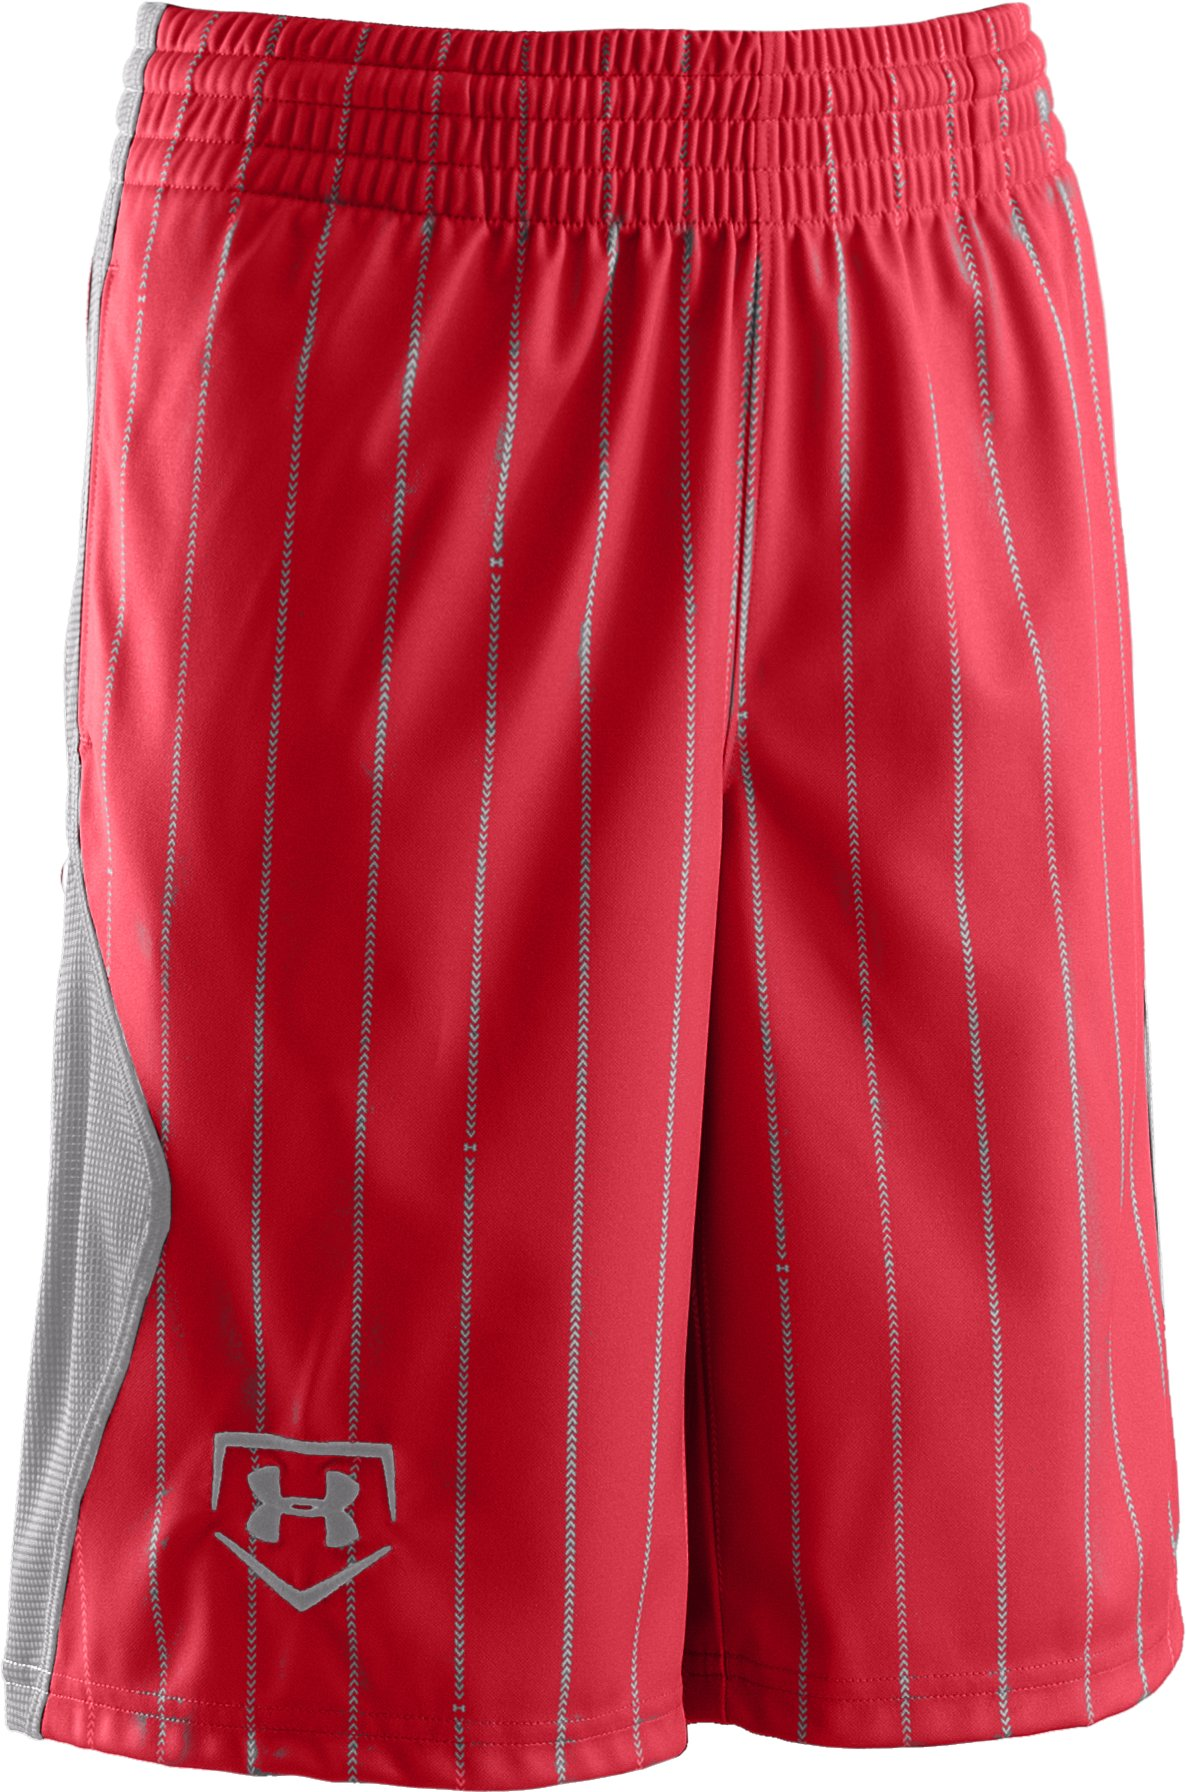 Boys' UA CTG Pinstripe Baseball Shorts, Red, zoomed image